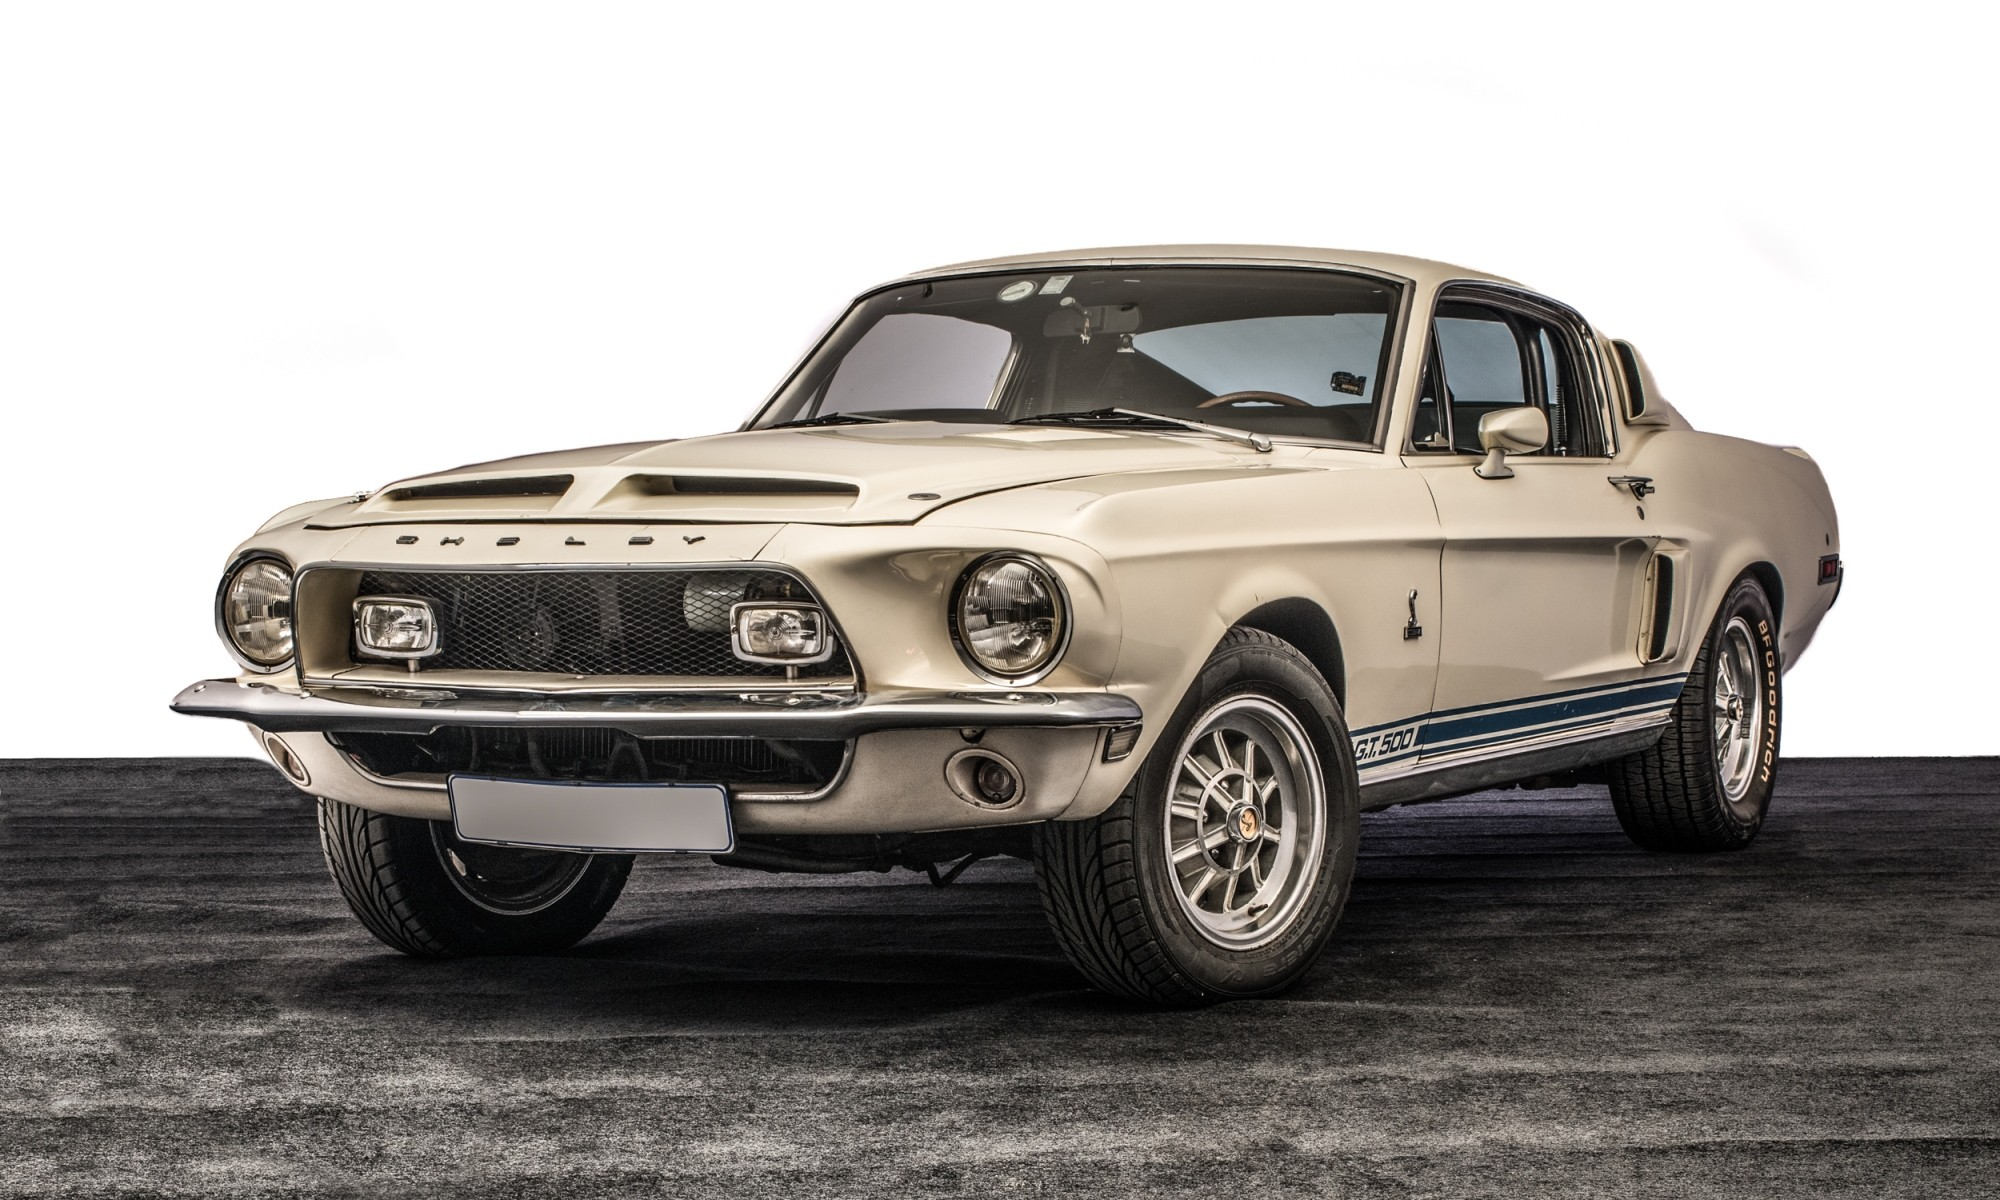 Completely original and unrestored Shelby Mustang GT 500 headlines the classic car auction